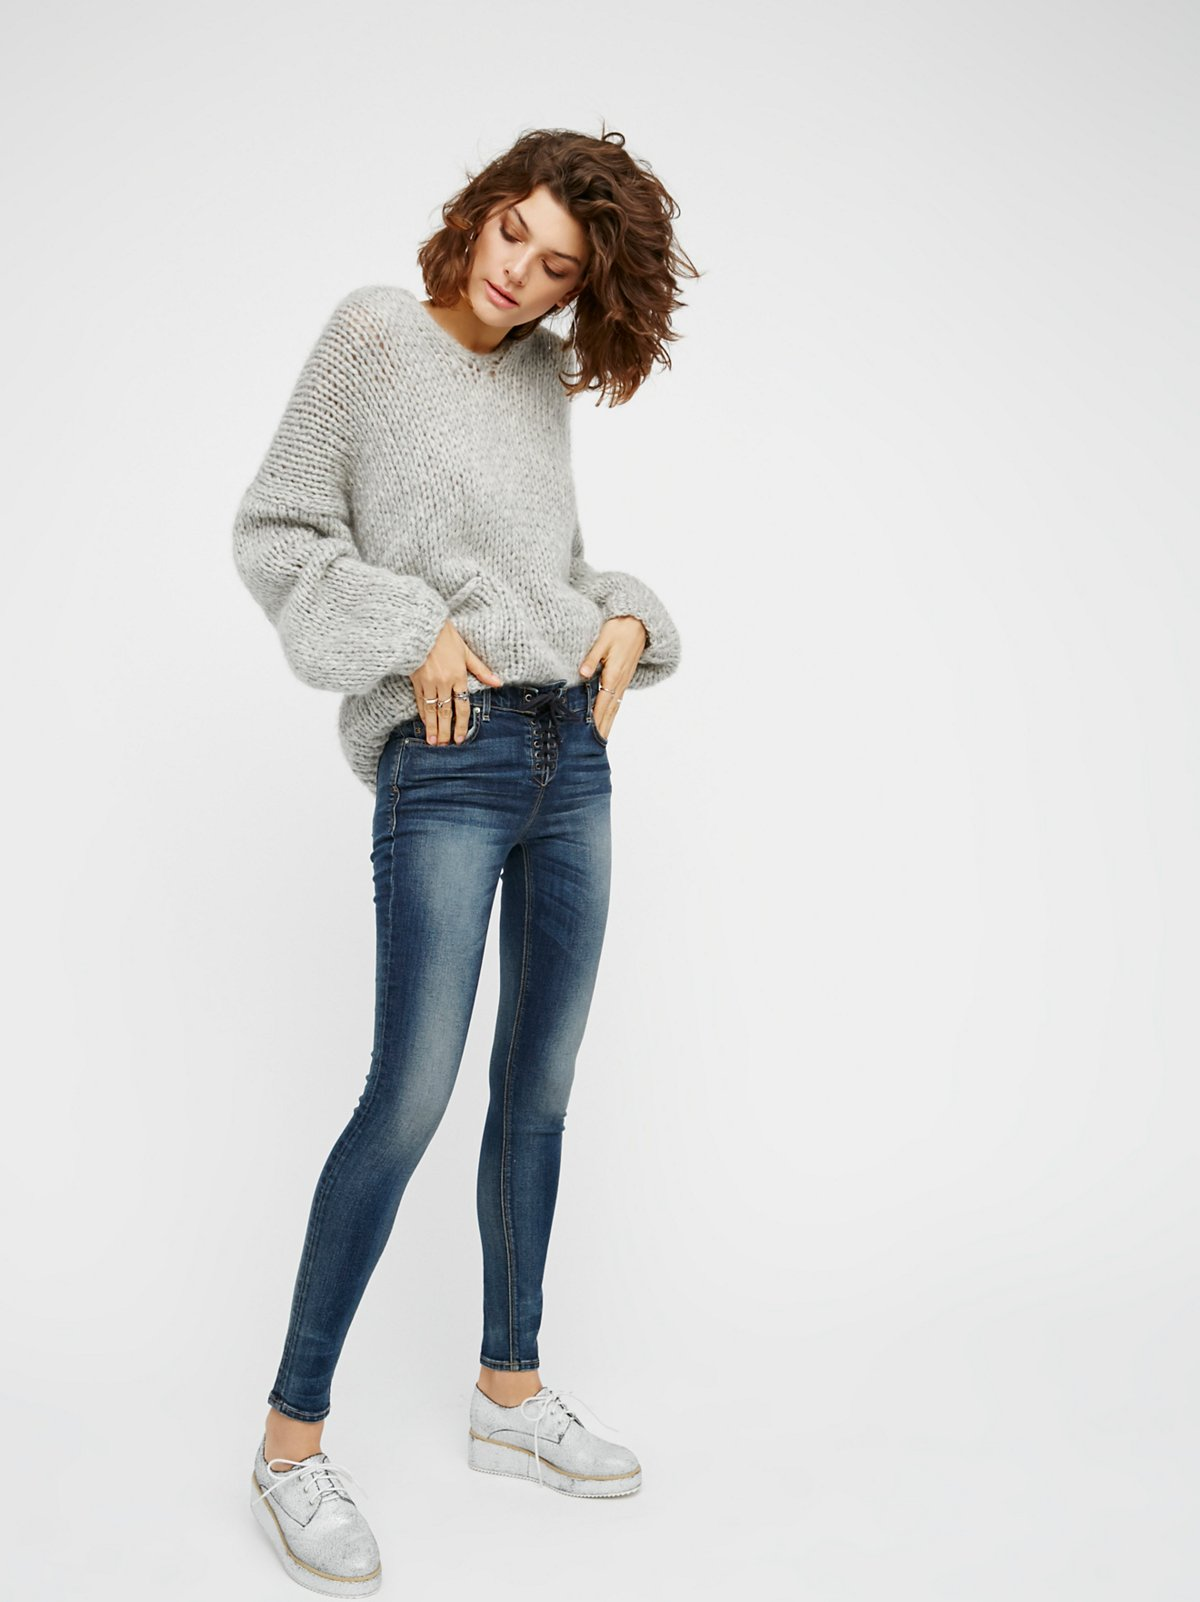 Shoreline Slim Lace-Up Skinnies